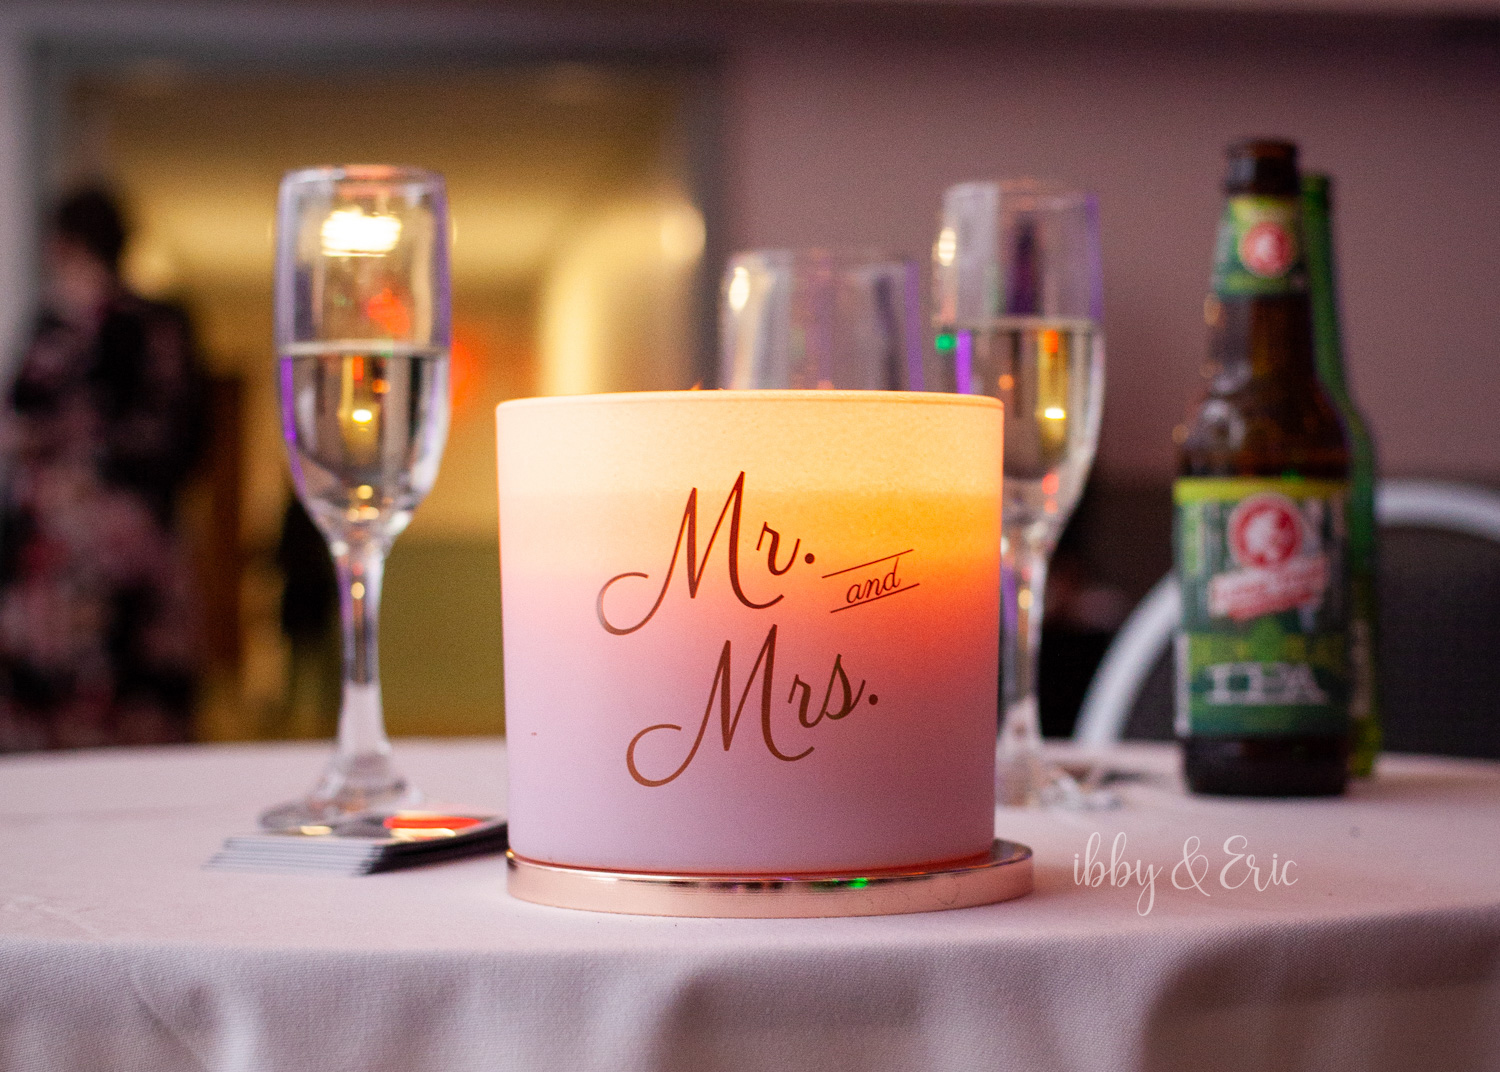 Mr. & Mrs. themed candle burns on the sweetheart table at the end of the wedding night.